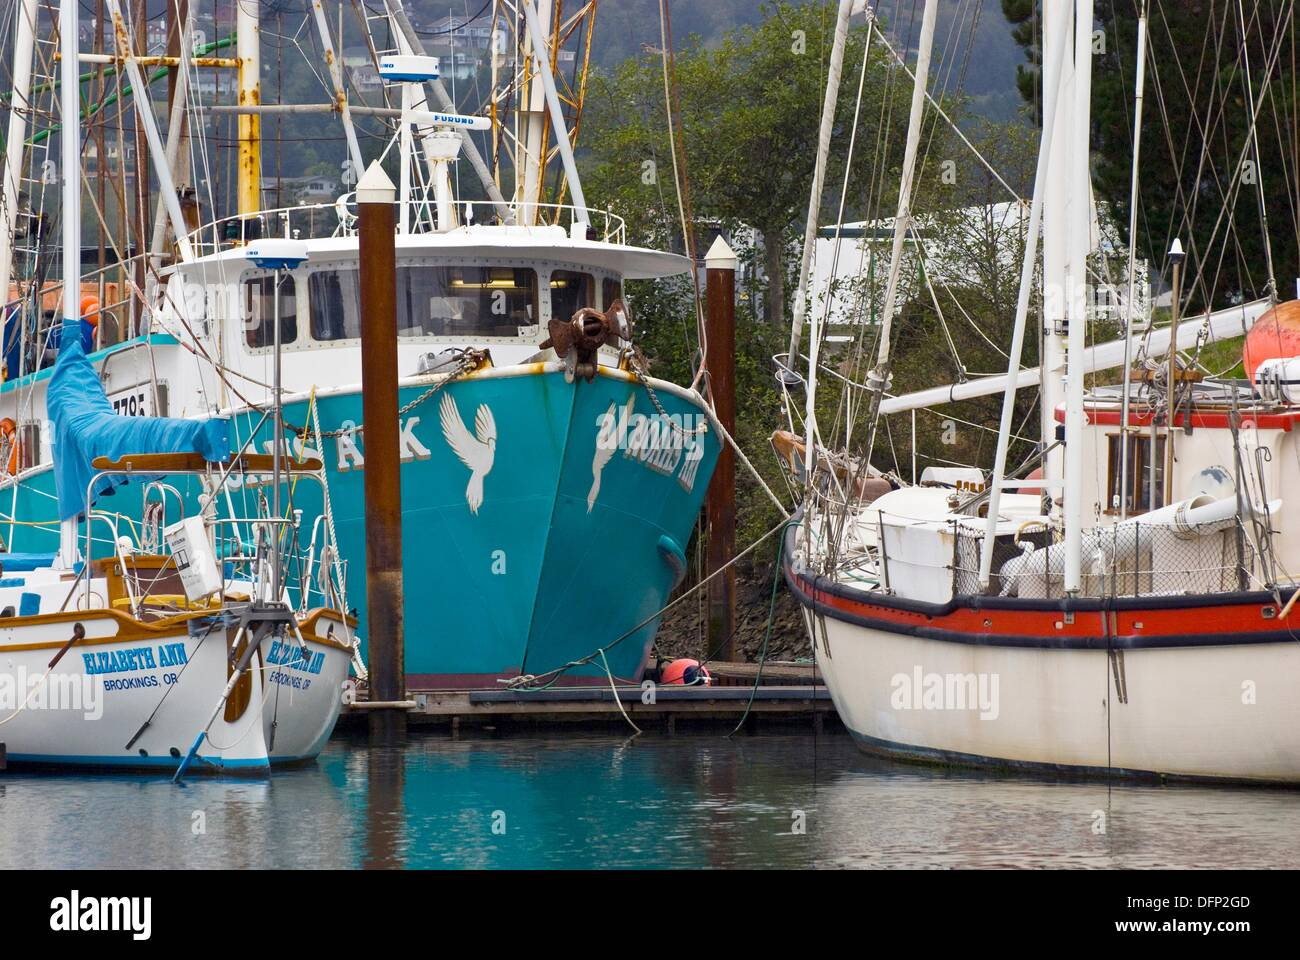 Commercial fishing boat harbor brookings oregon stock for Fishing brookings oregon